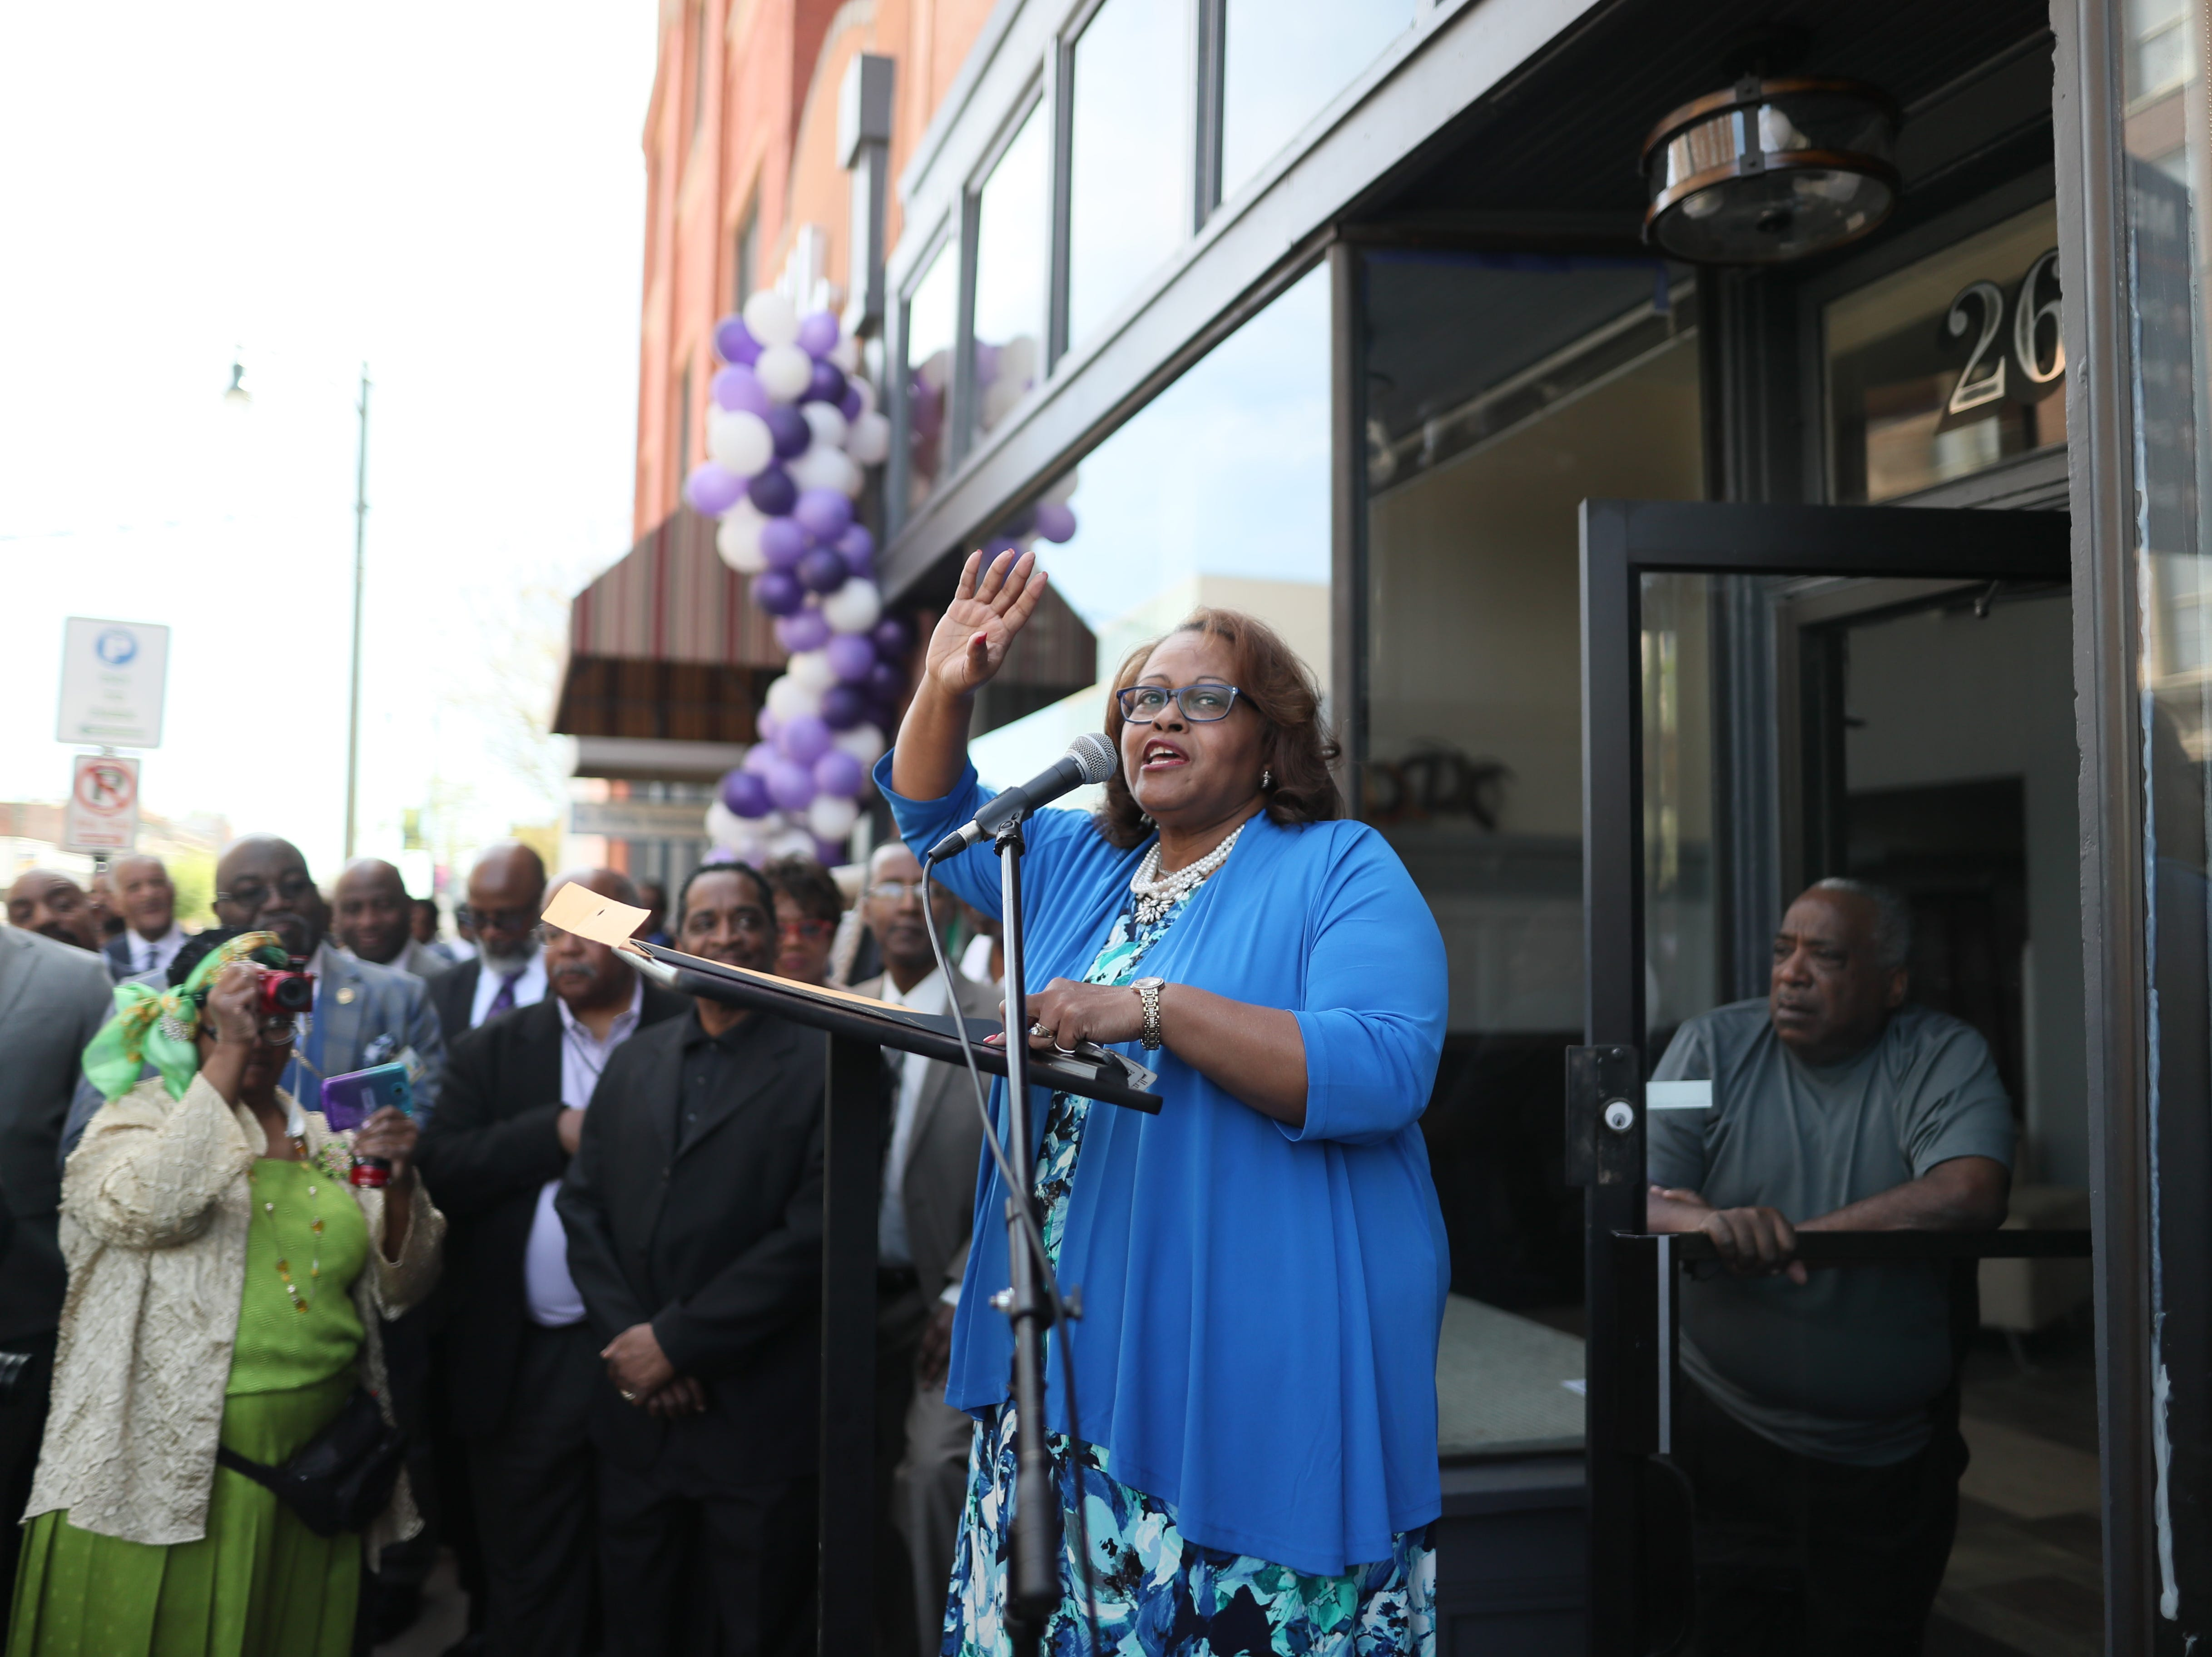 City Councilwoman Patrice Robinson speaks to people gathered on South Main Street downtown as the Adler Building is renamed 'The W.L.' in honor of his late father, Bishop W.L. Porter, on Wednesday, April 10, 2019.